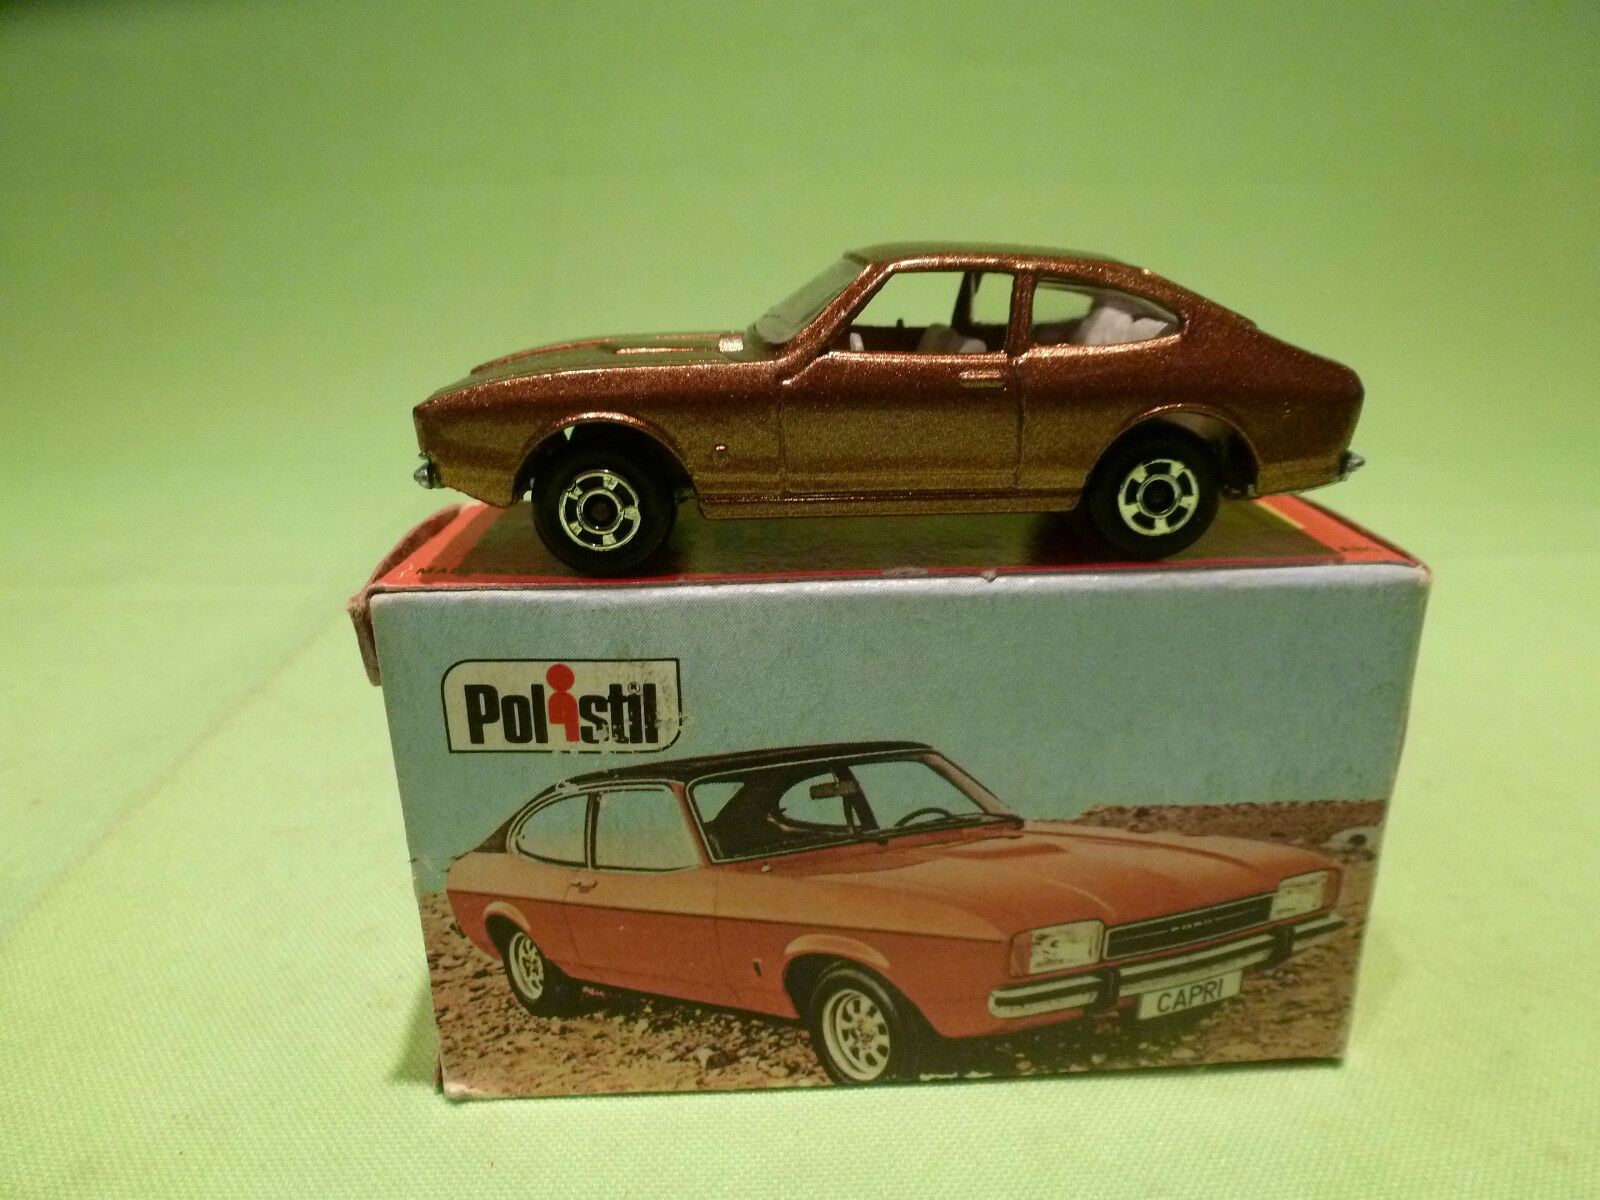 POLISTIL ART RJ.18 RJ18 FORD CAPRI II  -COPPER - GOOD CONDITION IN BOX - CLUB 33